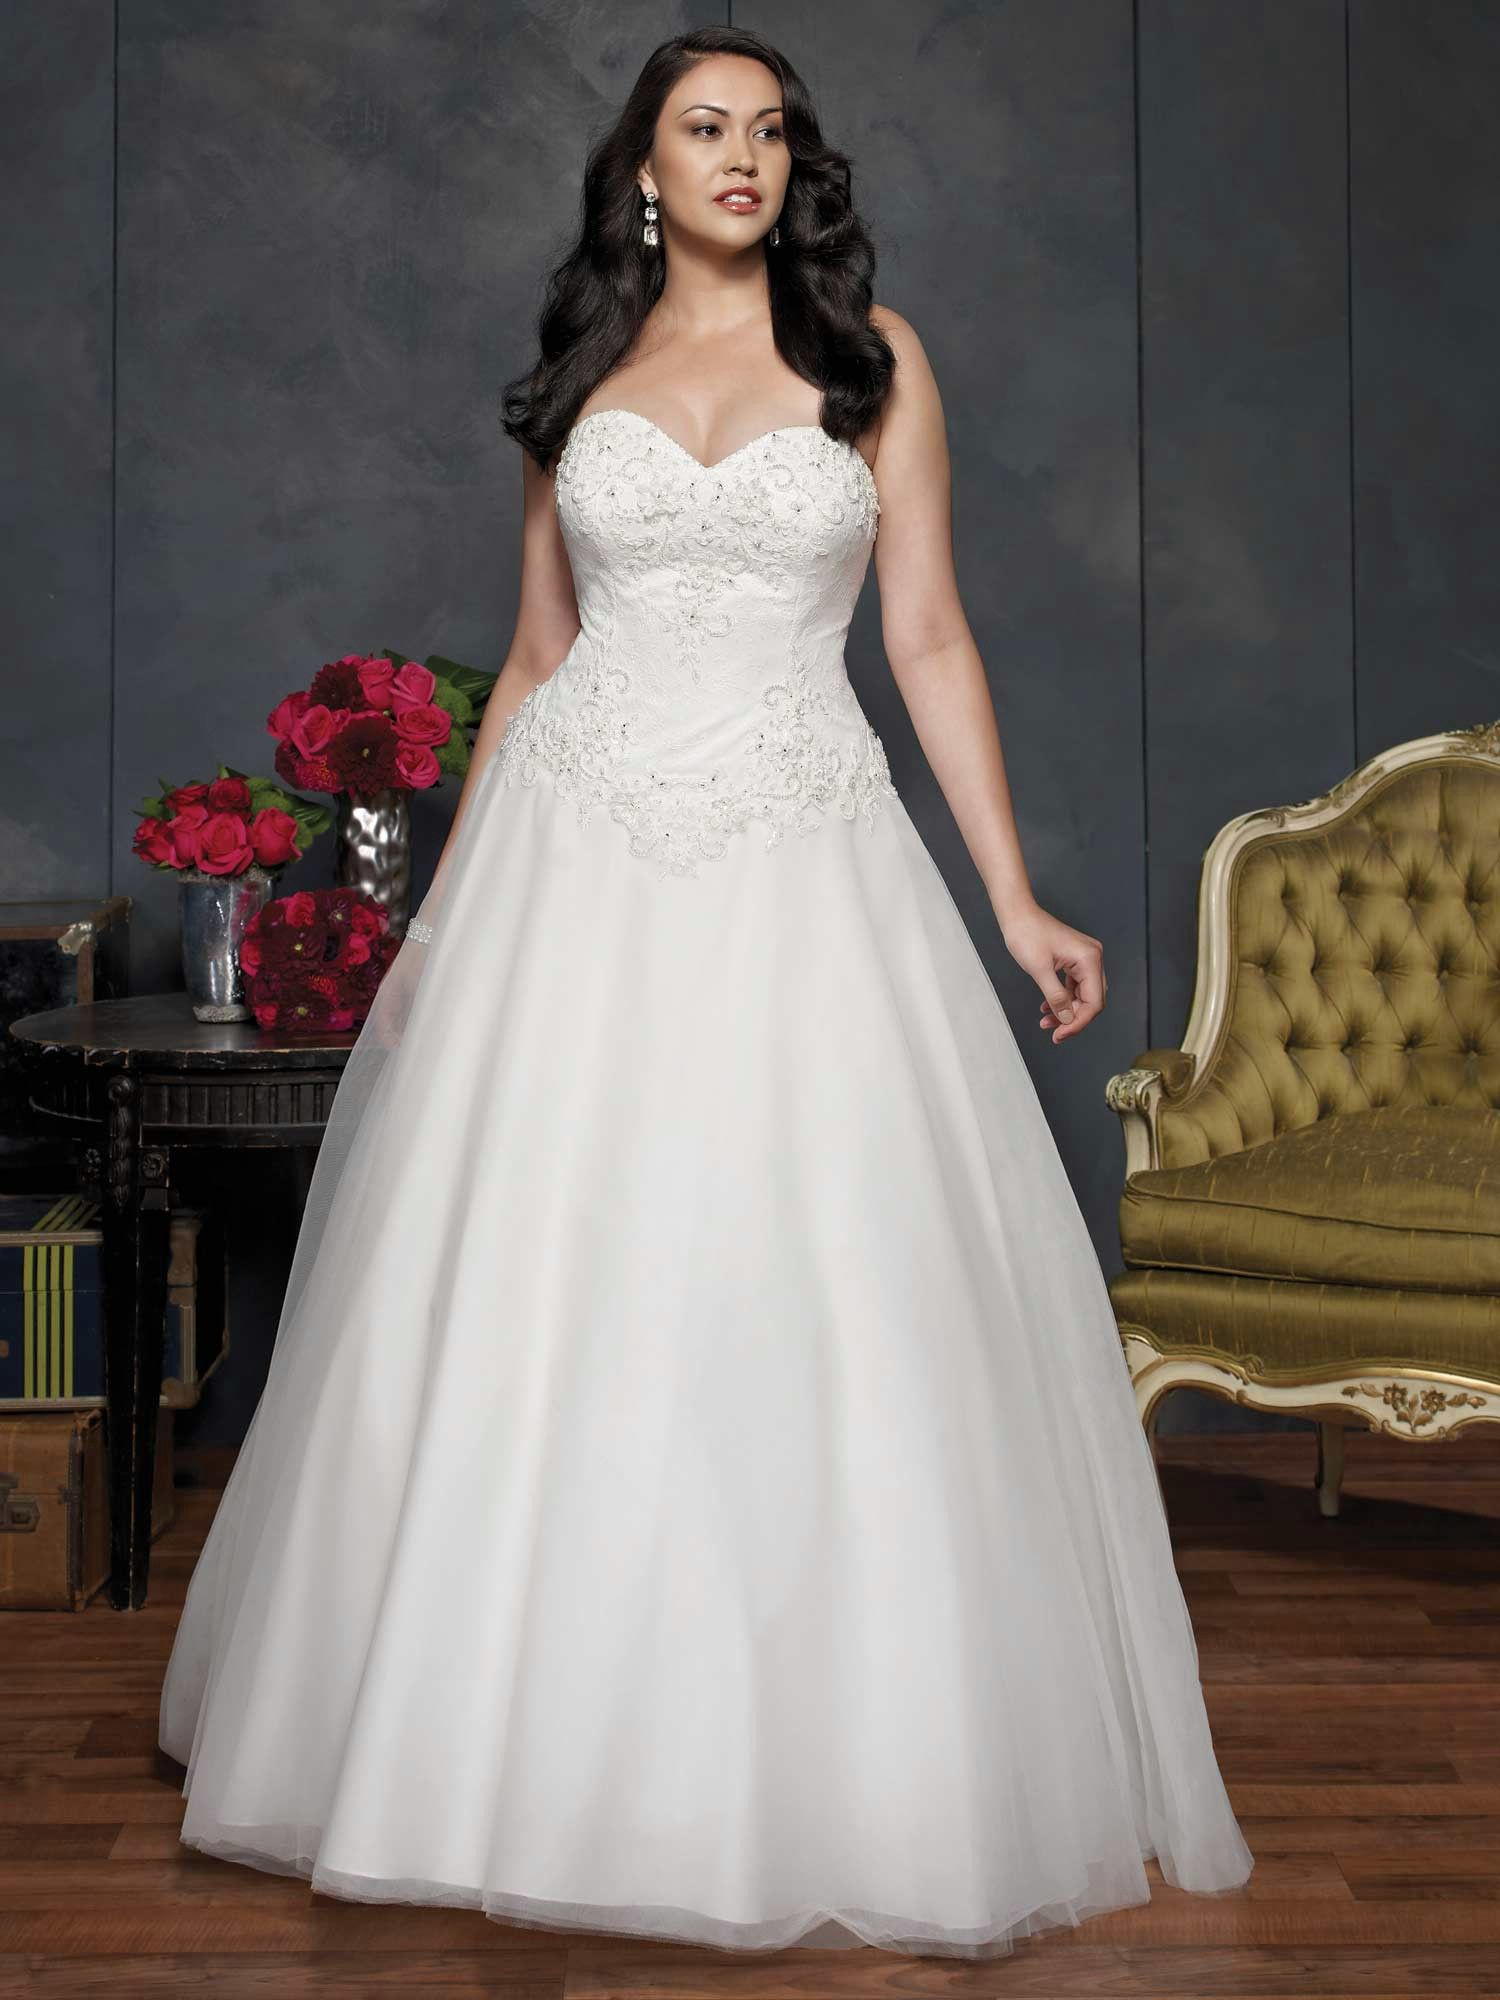 July th wedding dress sale off wedding dress bridal dresses